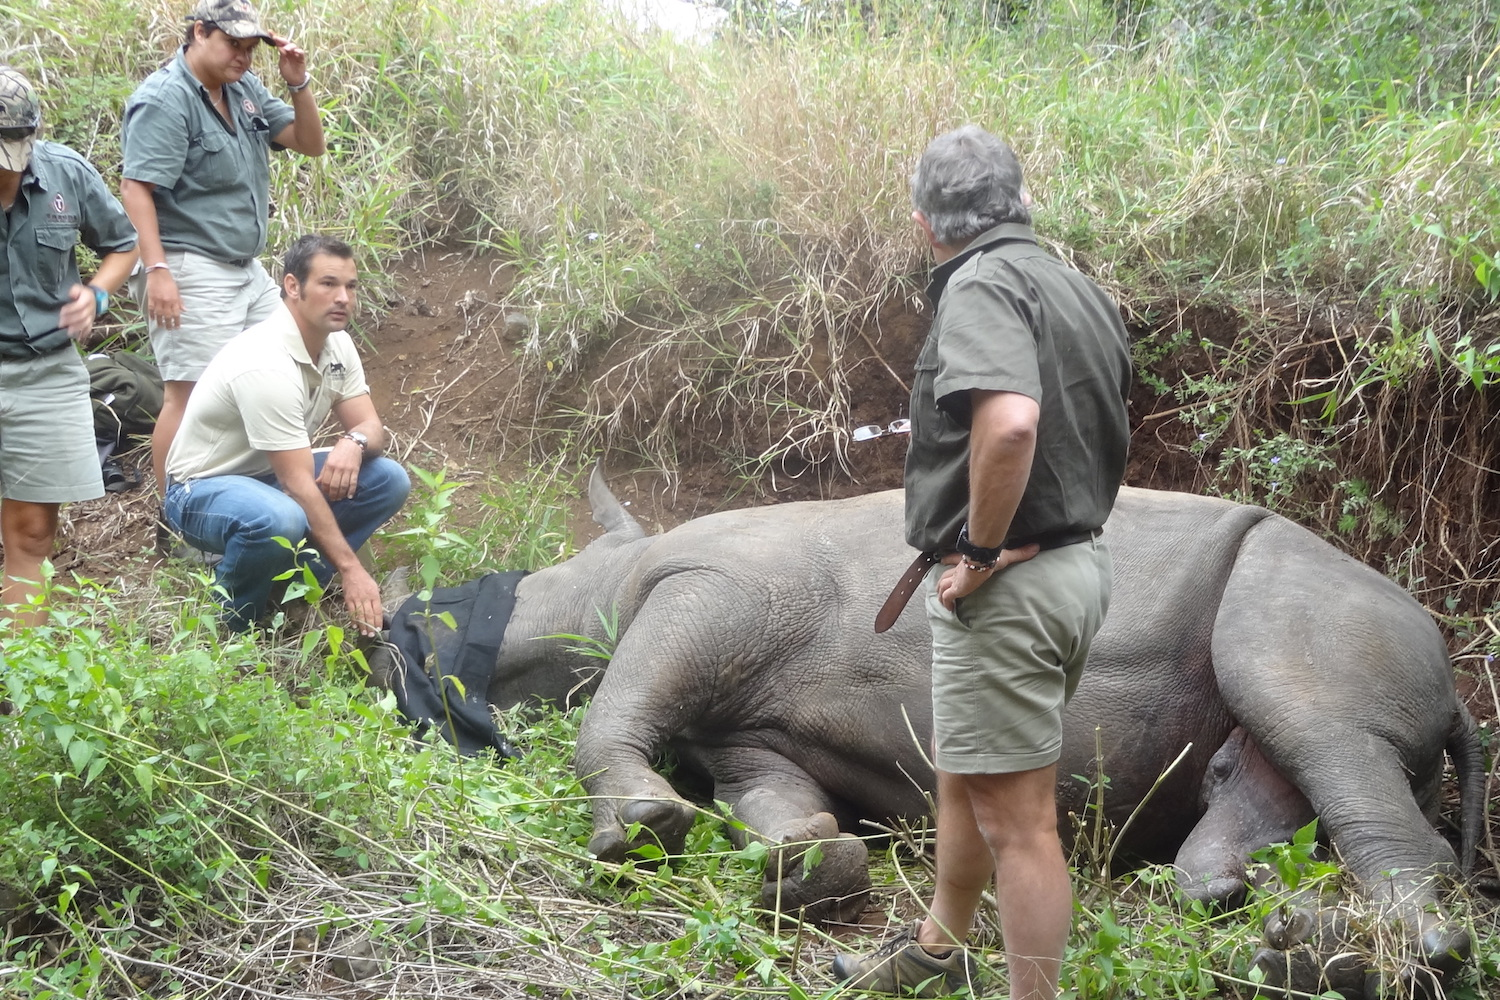 Sedated rhino, face covered, surrounded by a handful of people.